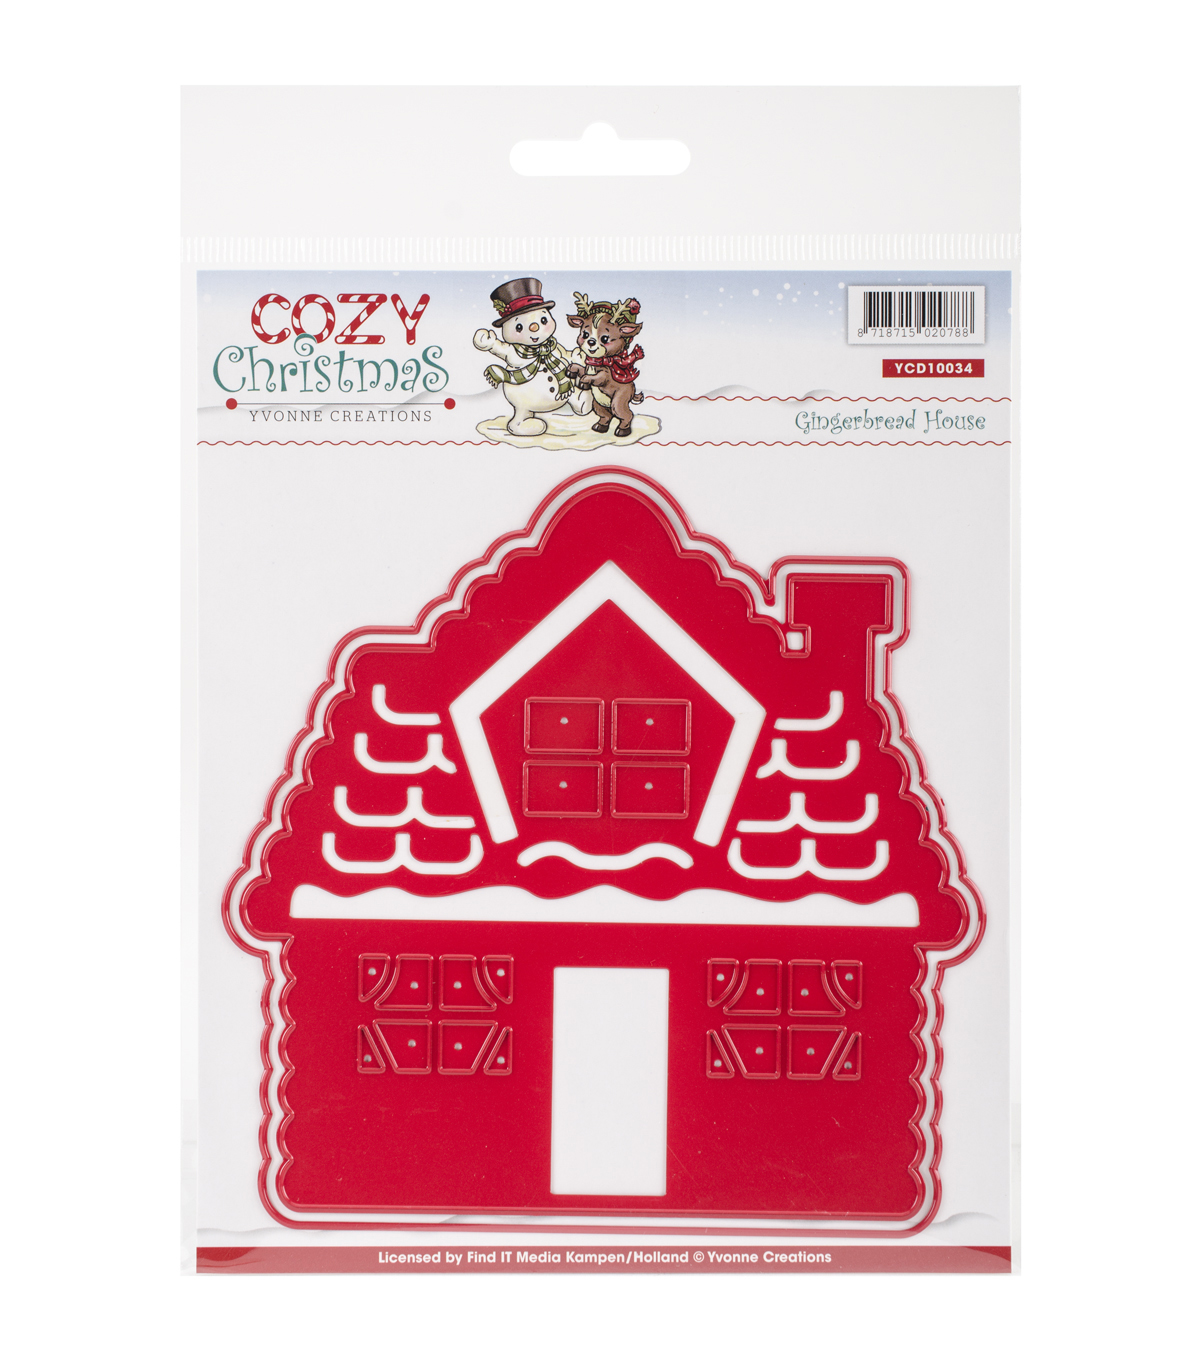 Yvonne Creations Cozy Christmas Die-Gingerbread House